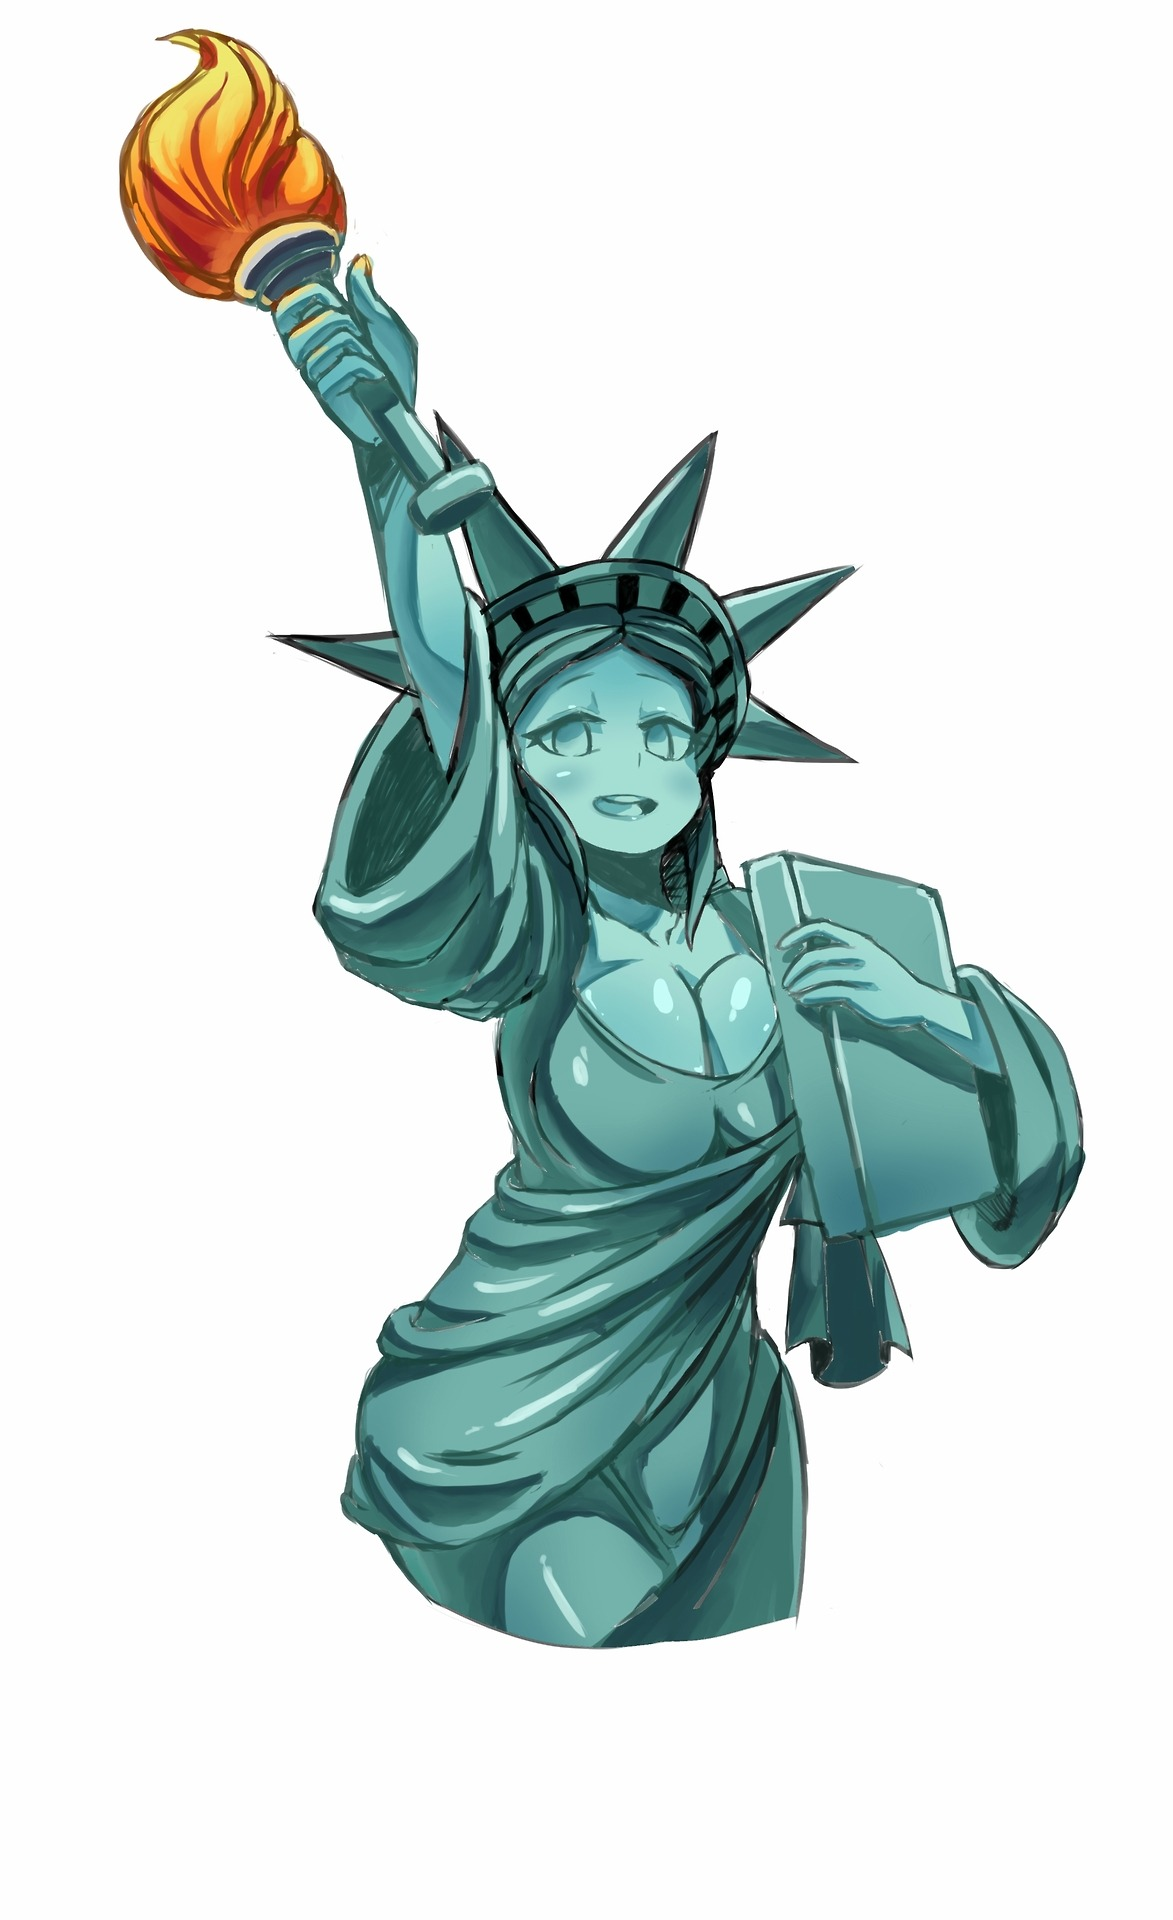 Internet Rule On Animated Porn statue of liberty | rule 34 | know your meme